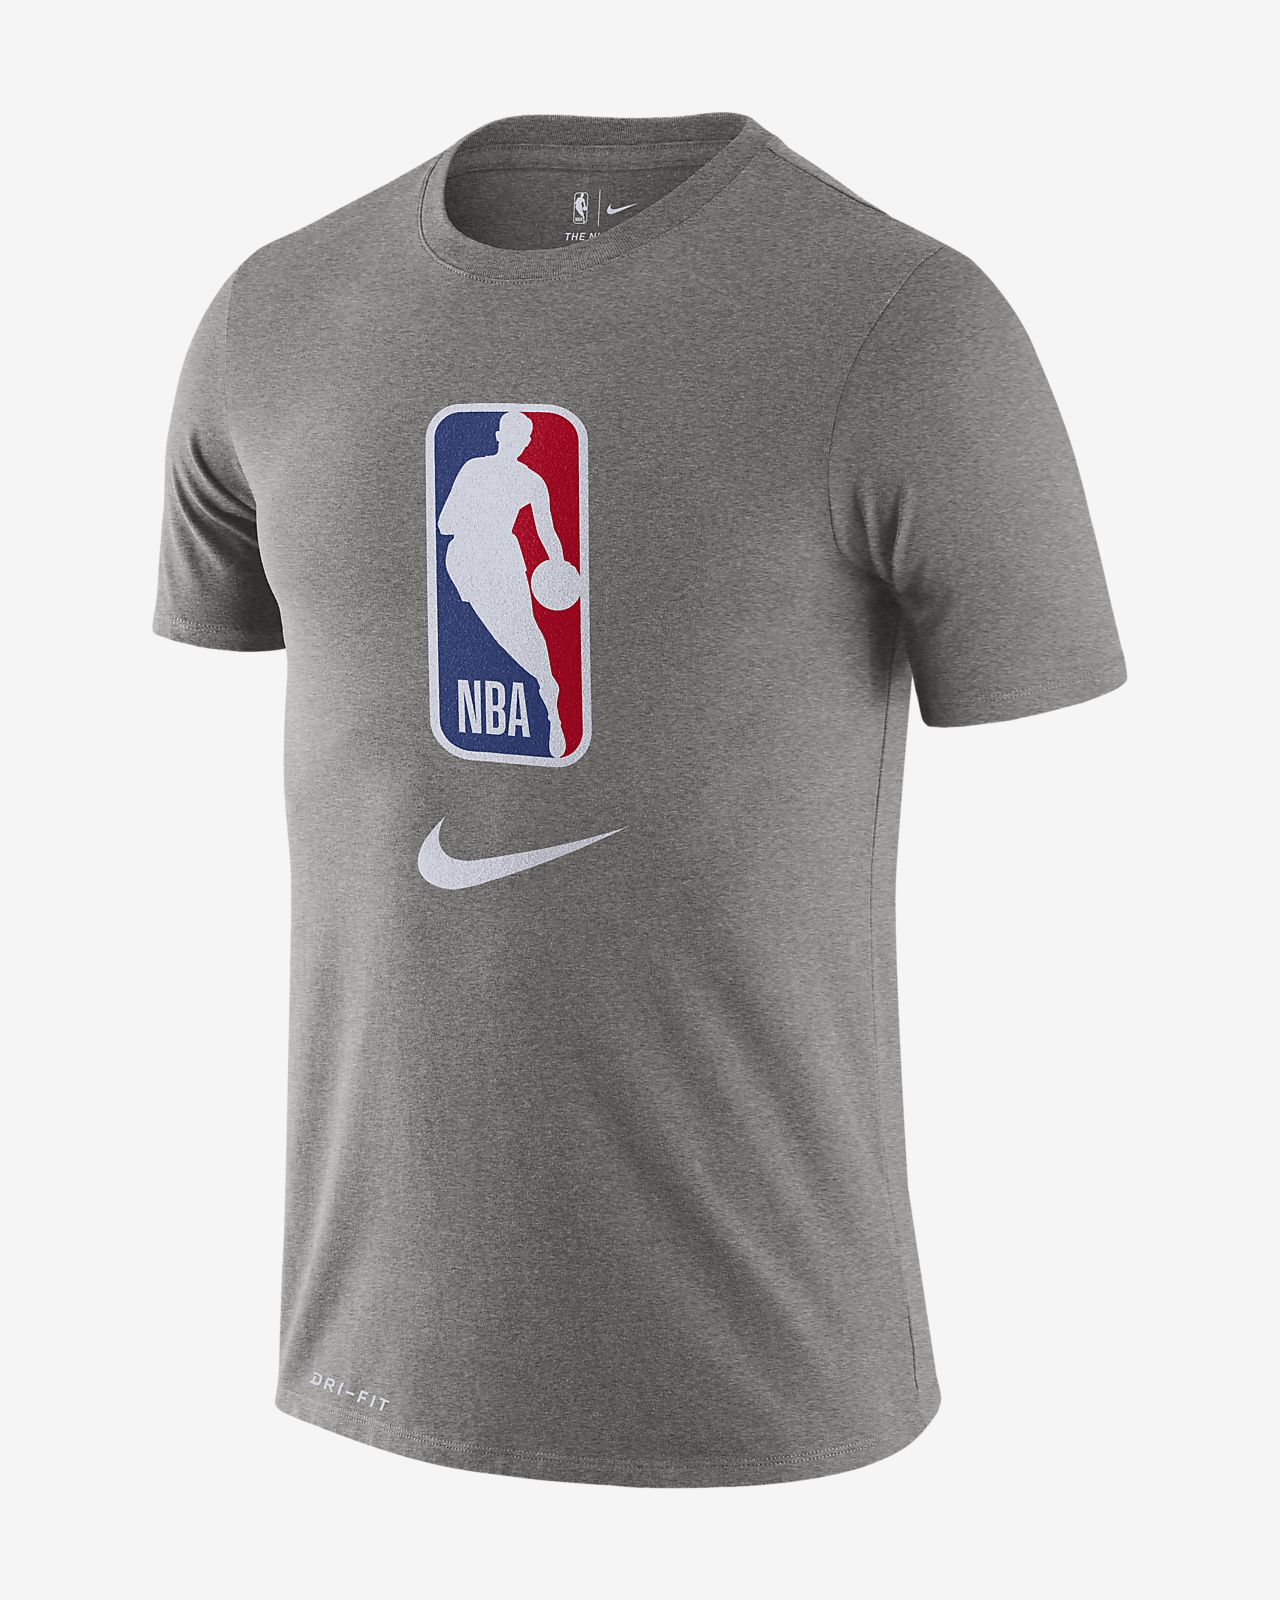 Milwaukee Bucks Nike Dri FIT Men's NBA T Shirt. SE